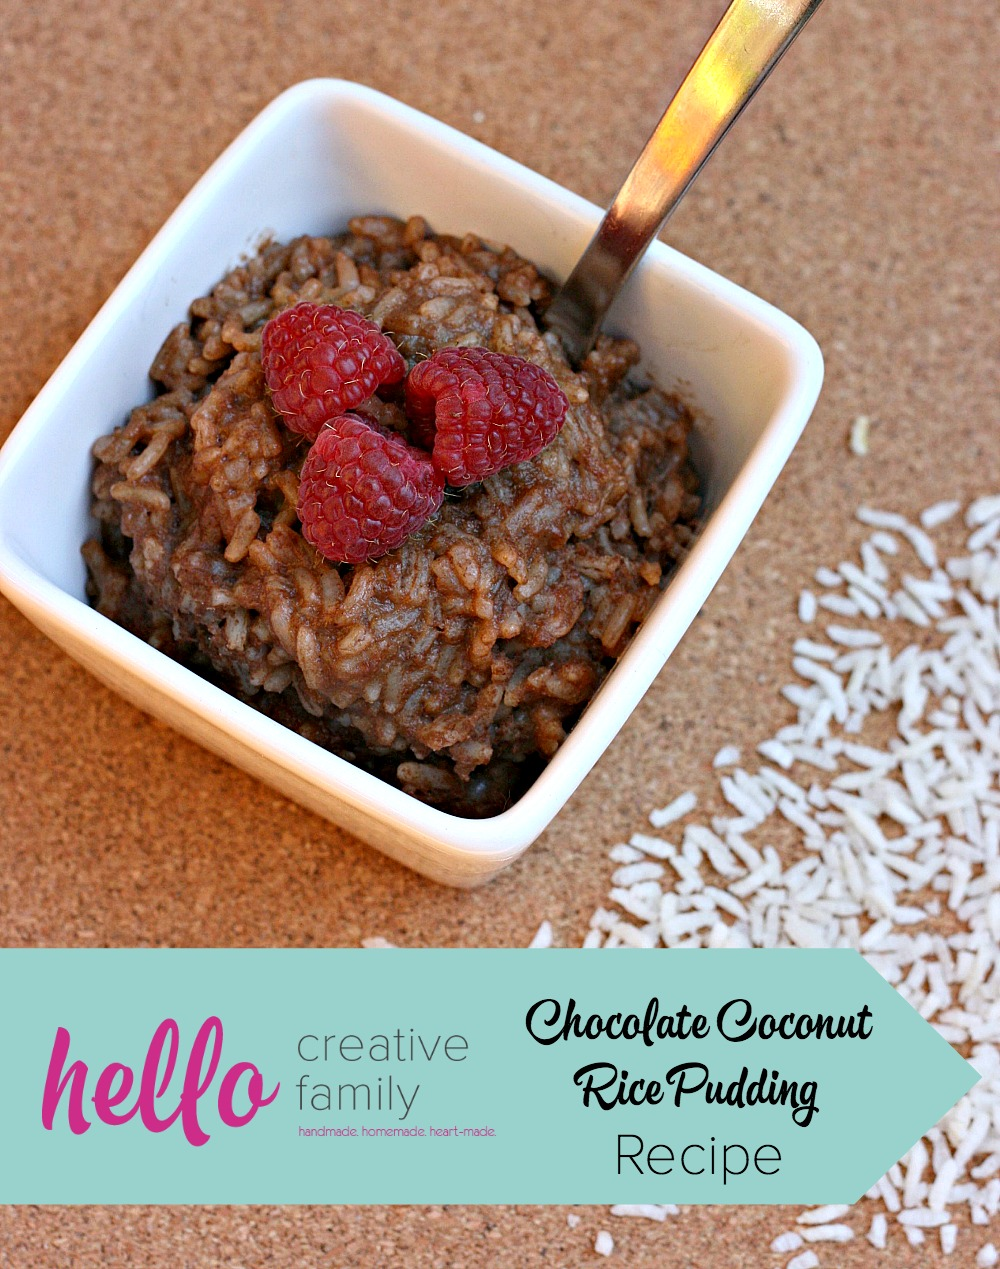 This Delicious Chocolate Coconut Rice Pudding Is Cooked Using Homemade  Chocolate Coconut Milk And Takes Less